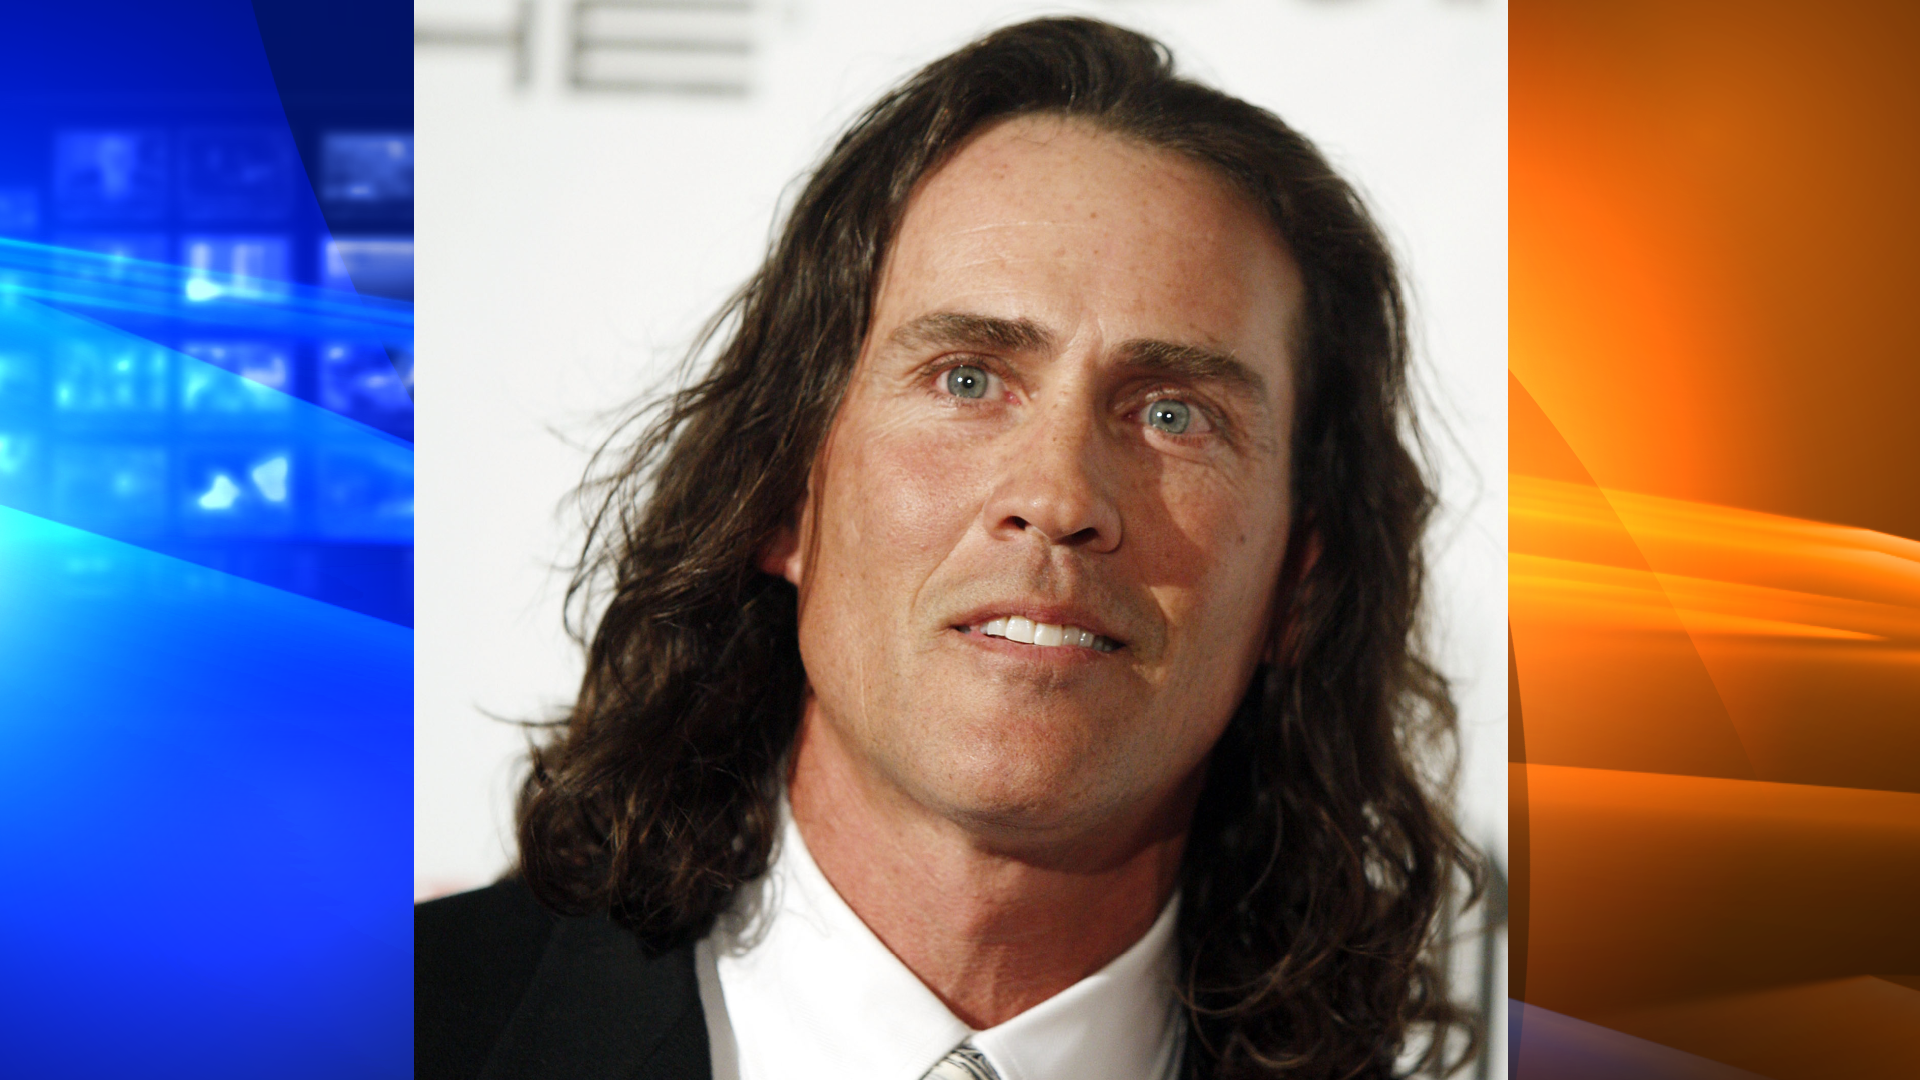 Actor Joe Lara arrives at the 6th Annual Living Legends of Aviation Awards ceremony at the Beverly Hilton Hotel on Jan. 22, 2009 in Beverly Hills. (Kevin Winter/Getty Images)